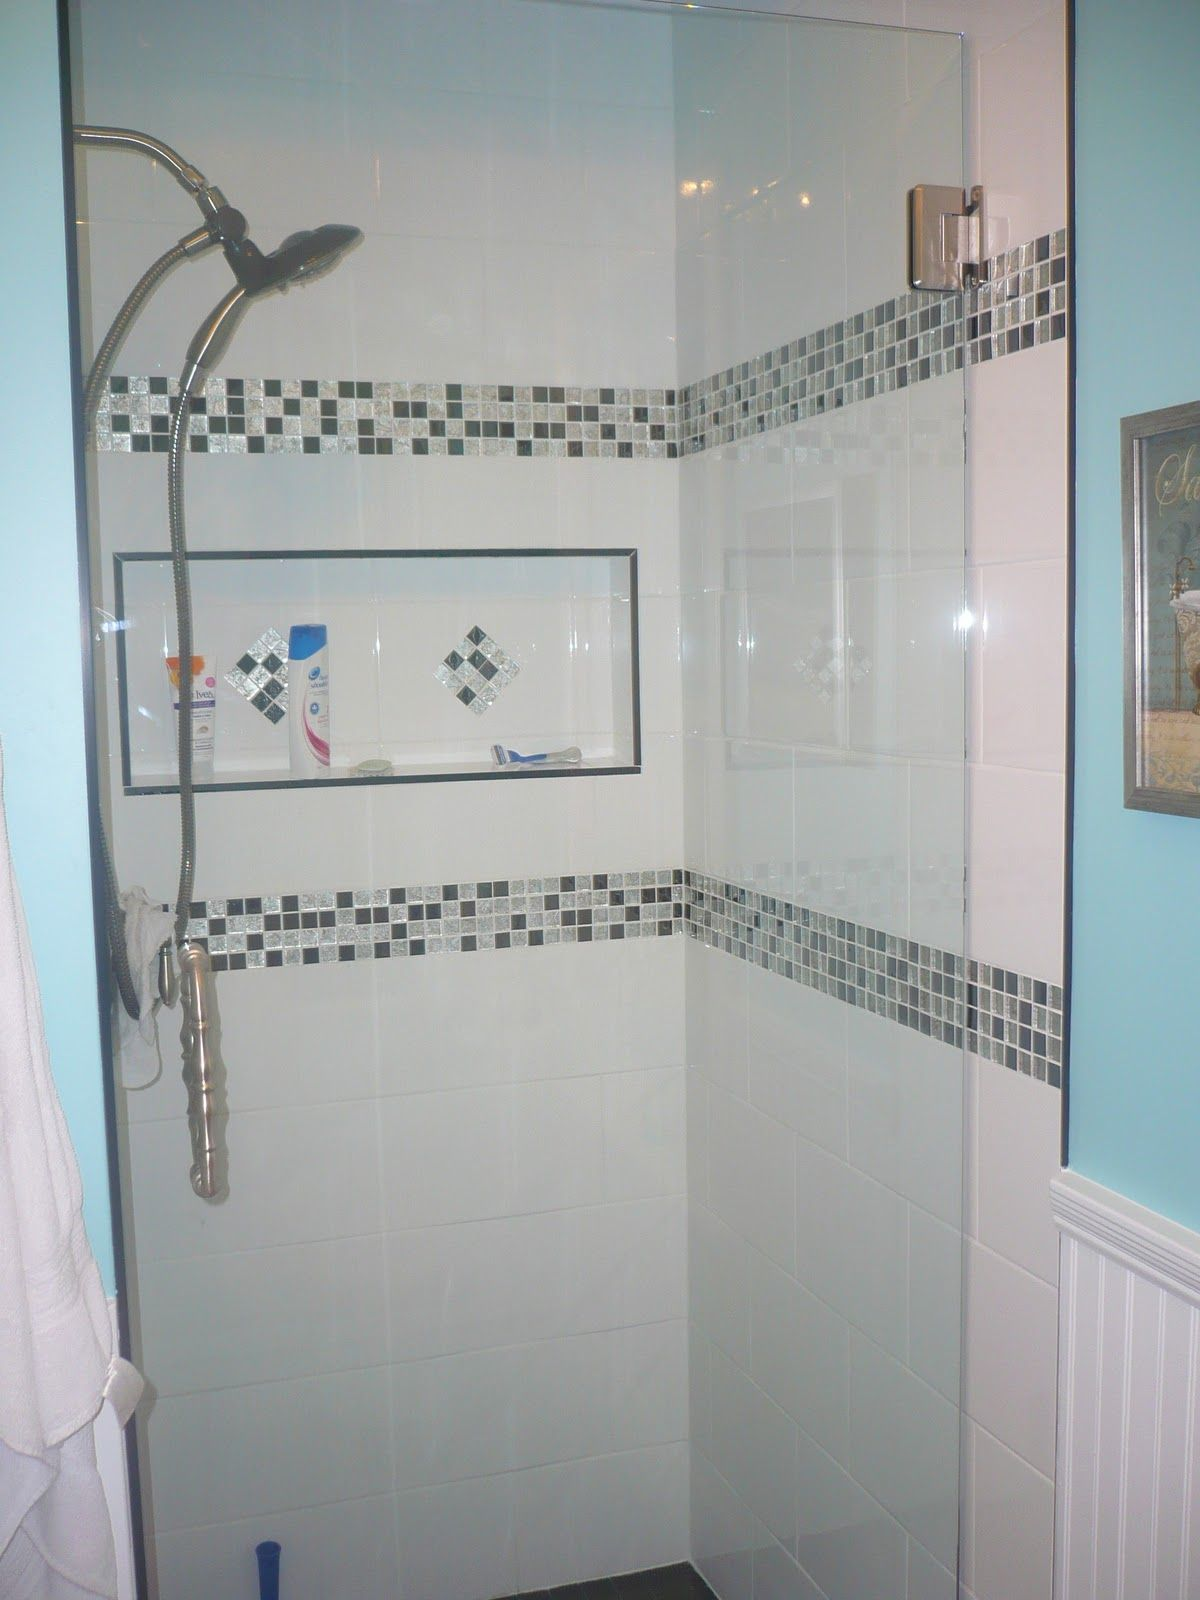 Bathroom Designs Using Subway Tile 2 bands composed of small squares; like the niche | bathroom